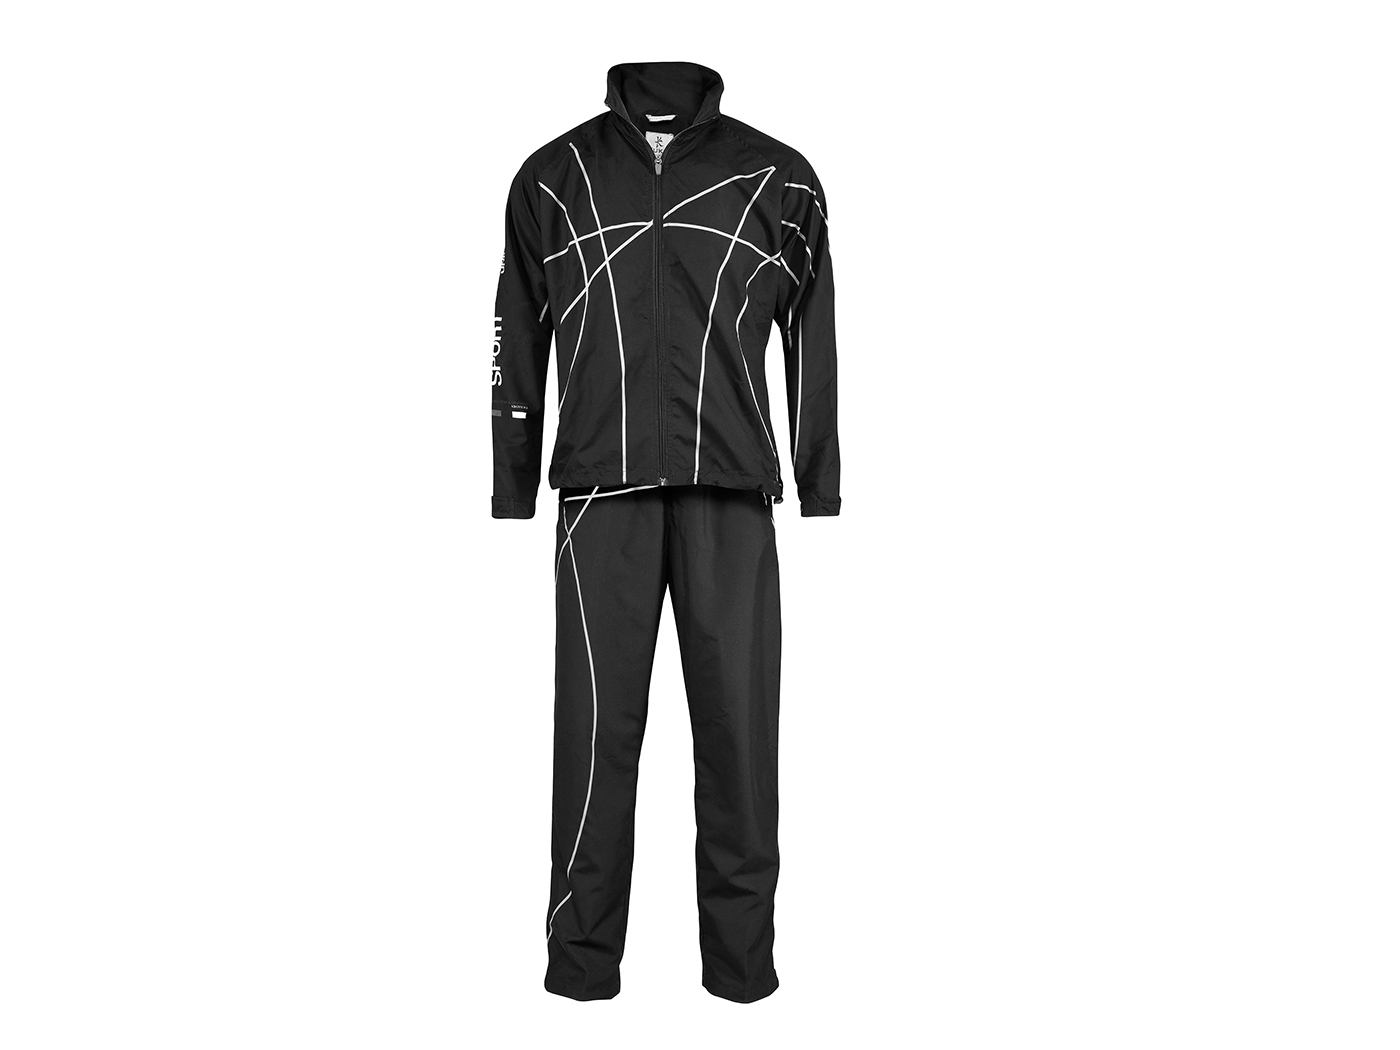 Men's Tracksuit front view